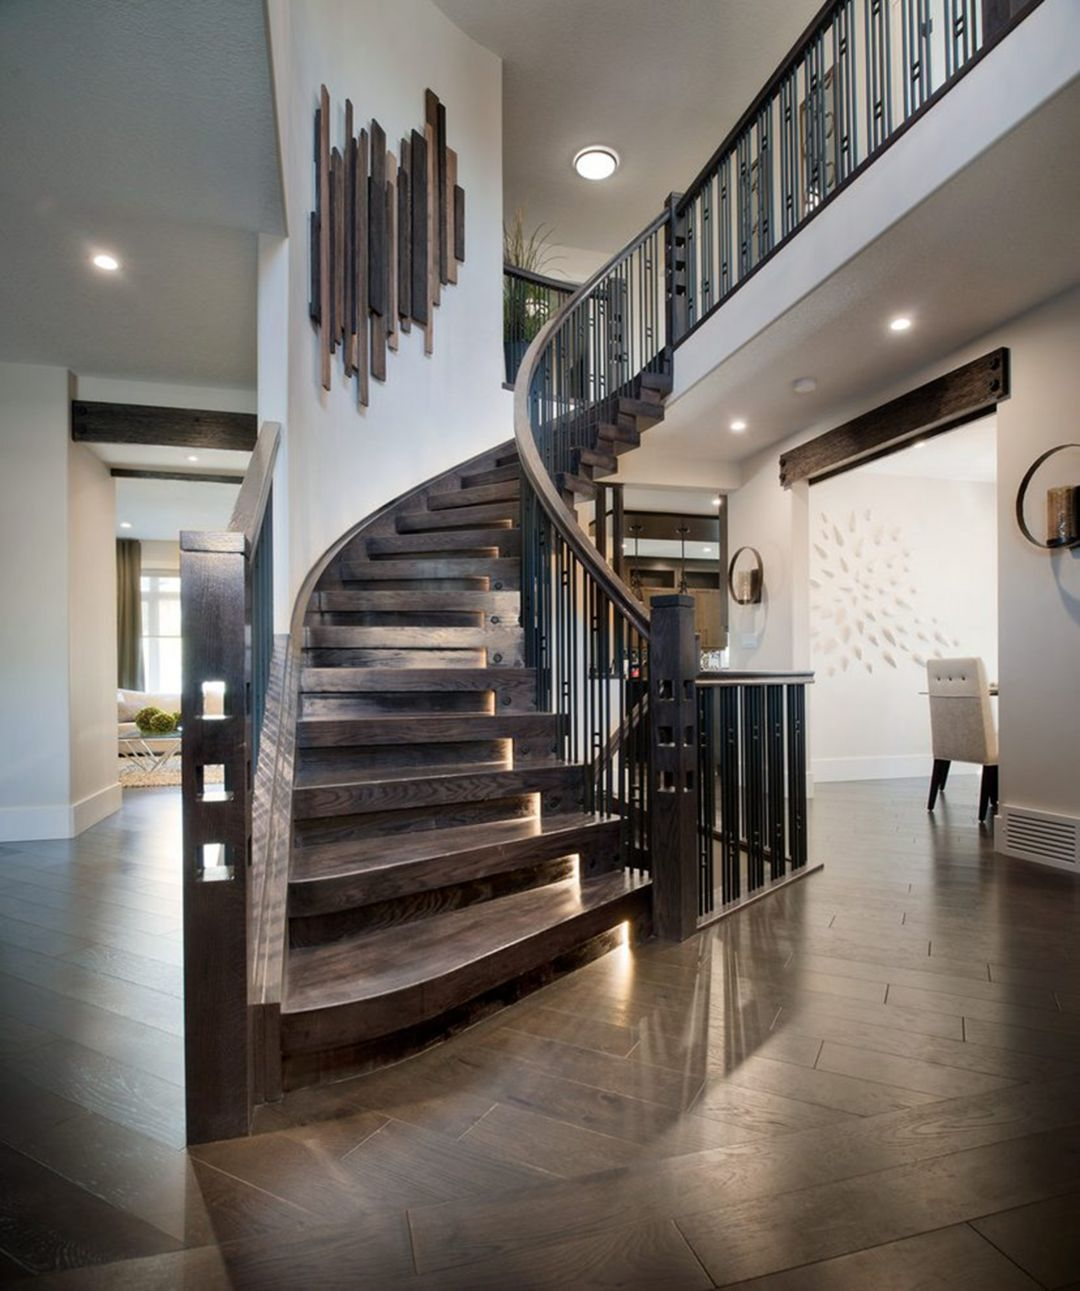 20 Beautiful Stairs Design Ideas To Add Enchanting ...